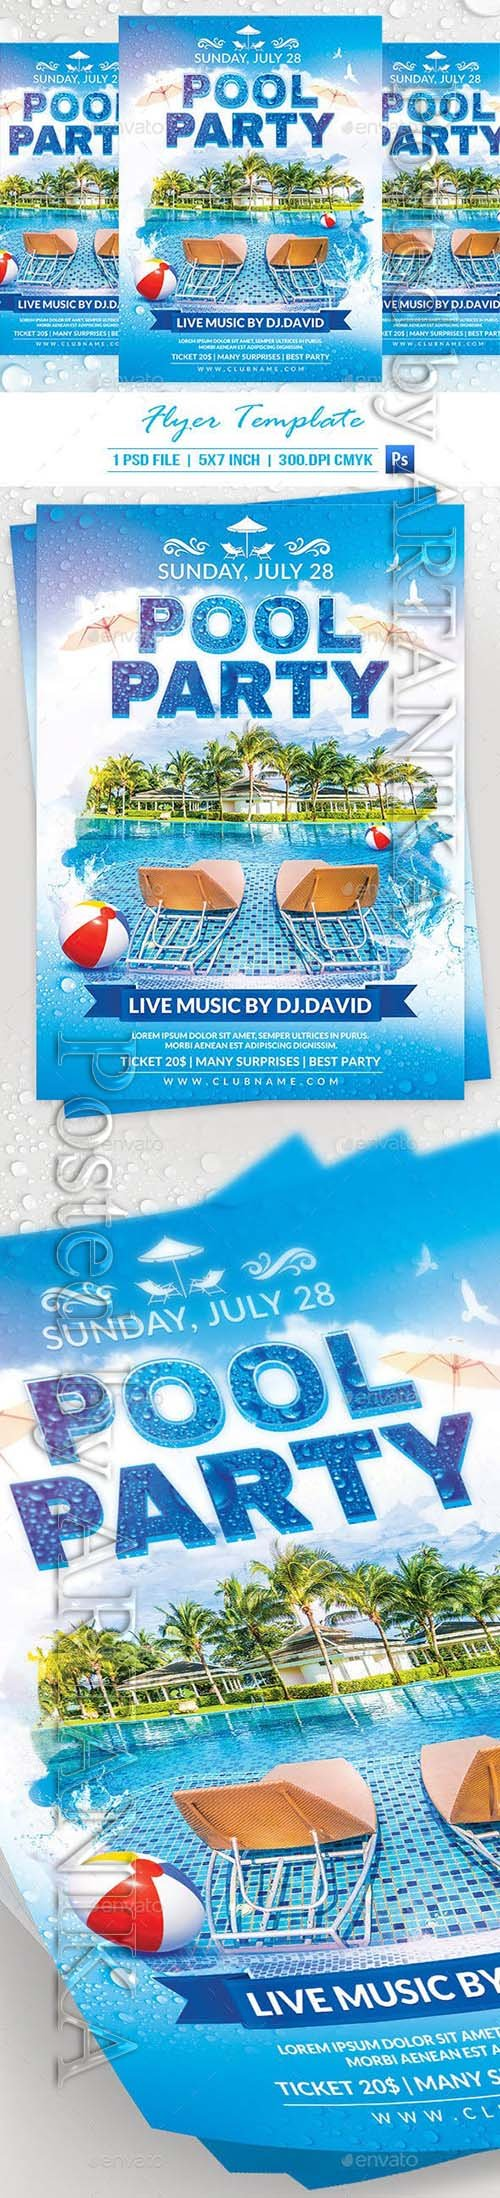 Pool Party Flyer Template 19967044